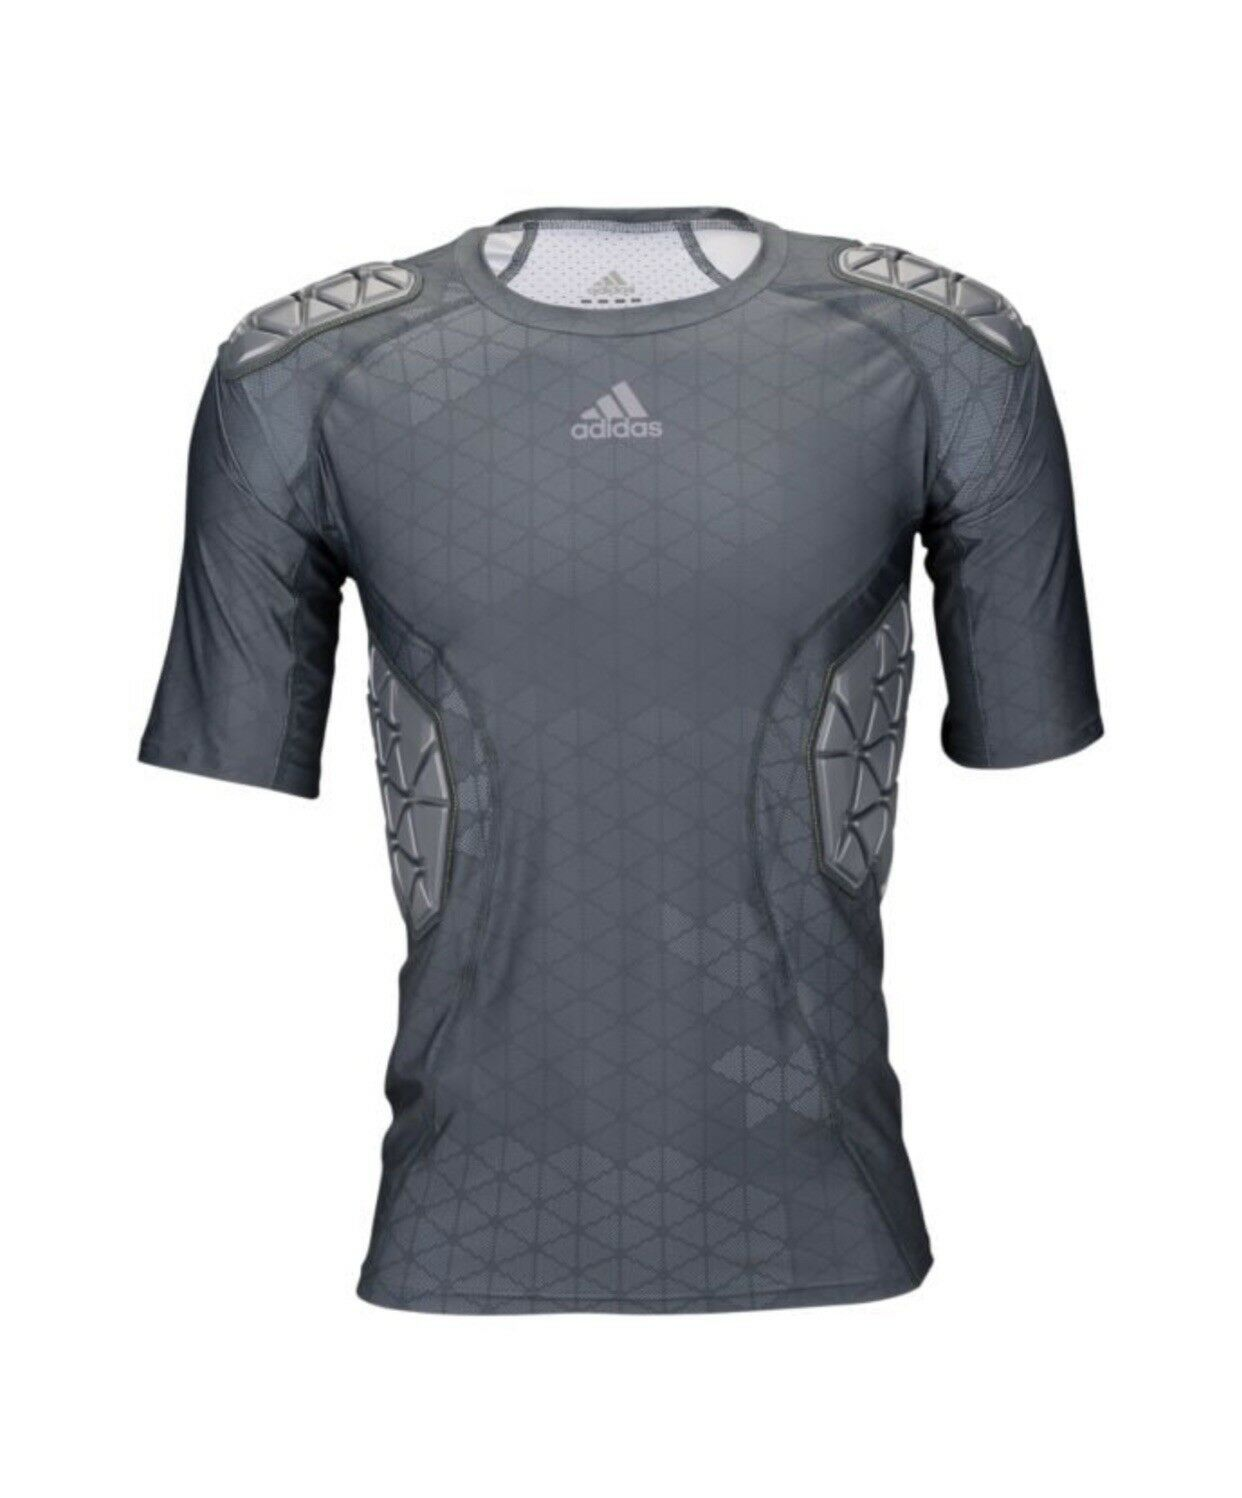 Men's Adidas Ironskin 5-Pad Top - Dimensione gree